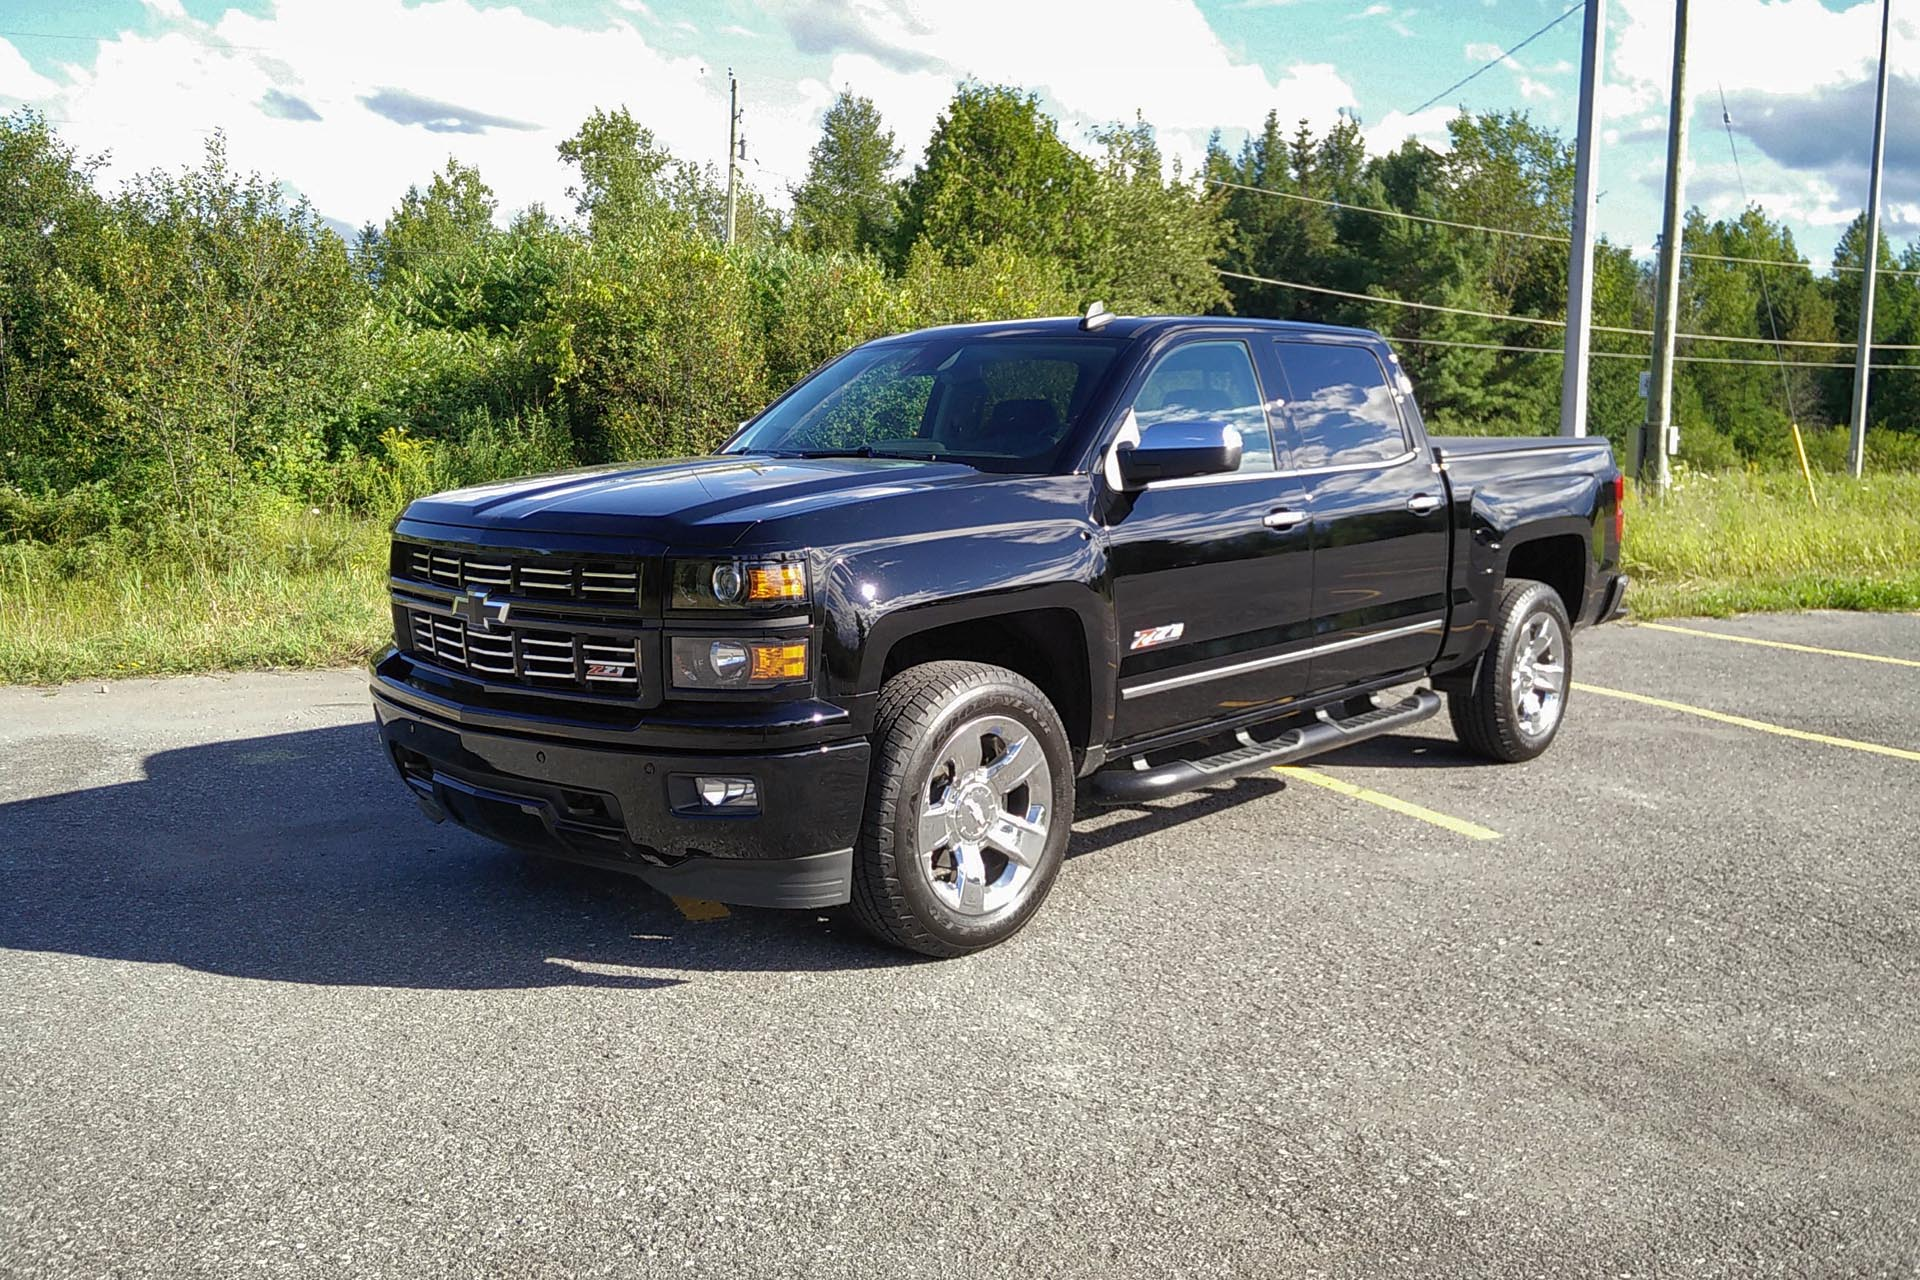 2015 chevrolet silverado 1500 4wd crew cab ltz. Black Bedroom Furniture Sets. Home Design Ideas